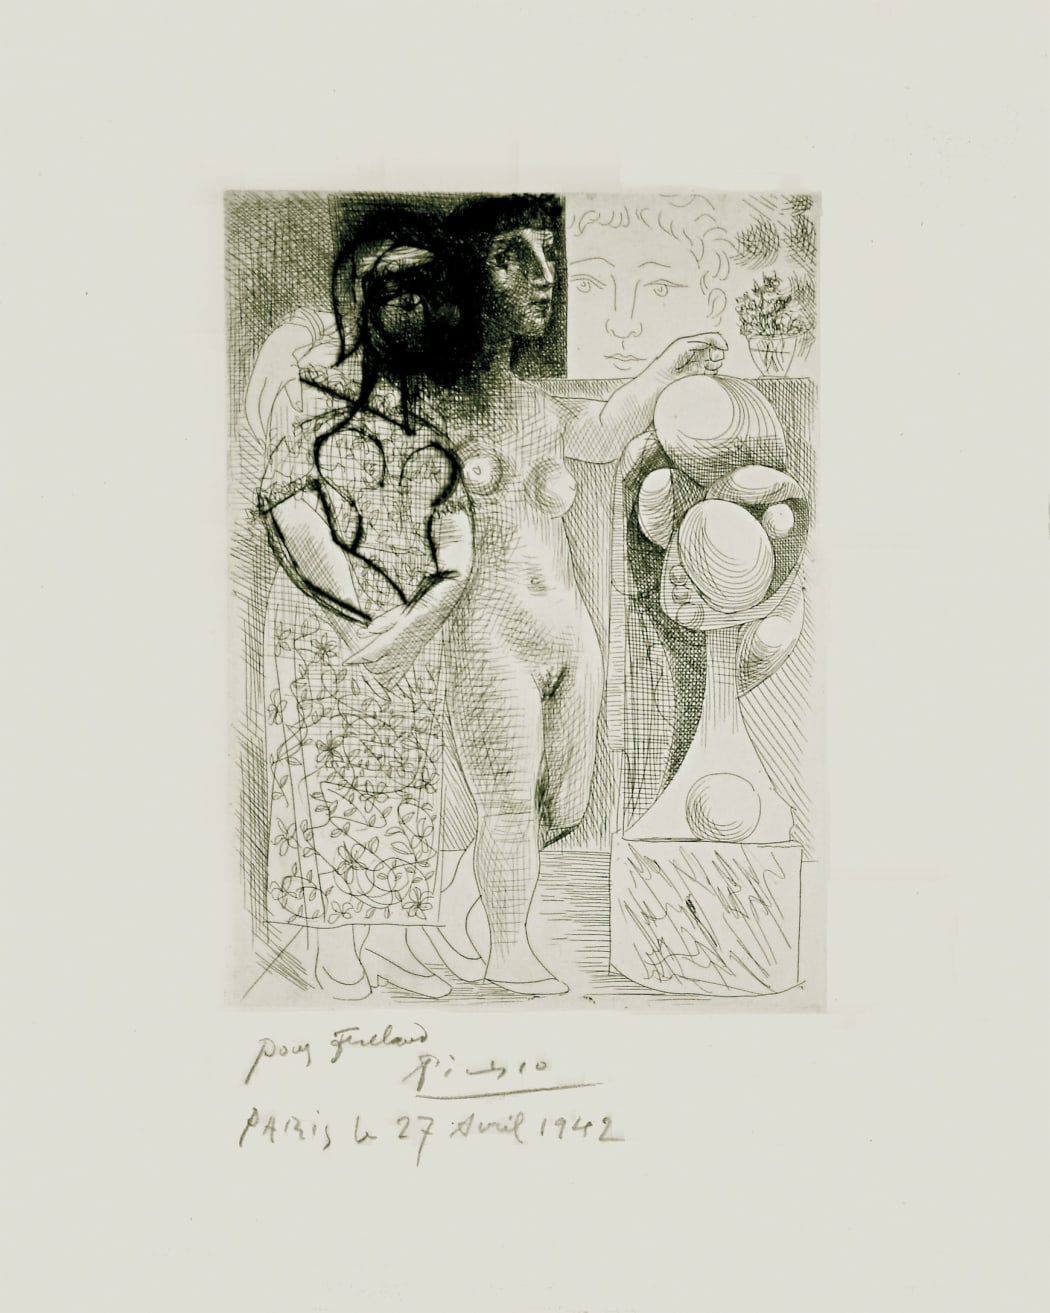 Muse montrant à Marie-Thérèse pensive son Portrait sculpté B257, 1933 (March 17.III, Paris), etching, 16 7/8 x 13 1/4 inches